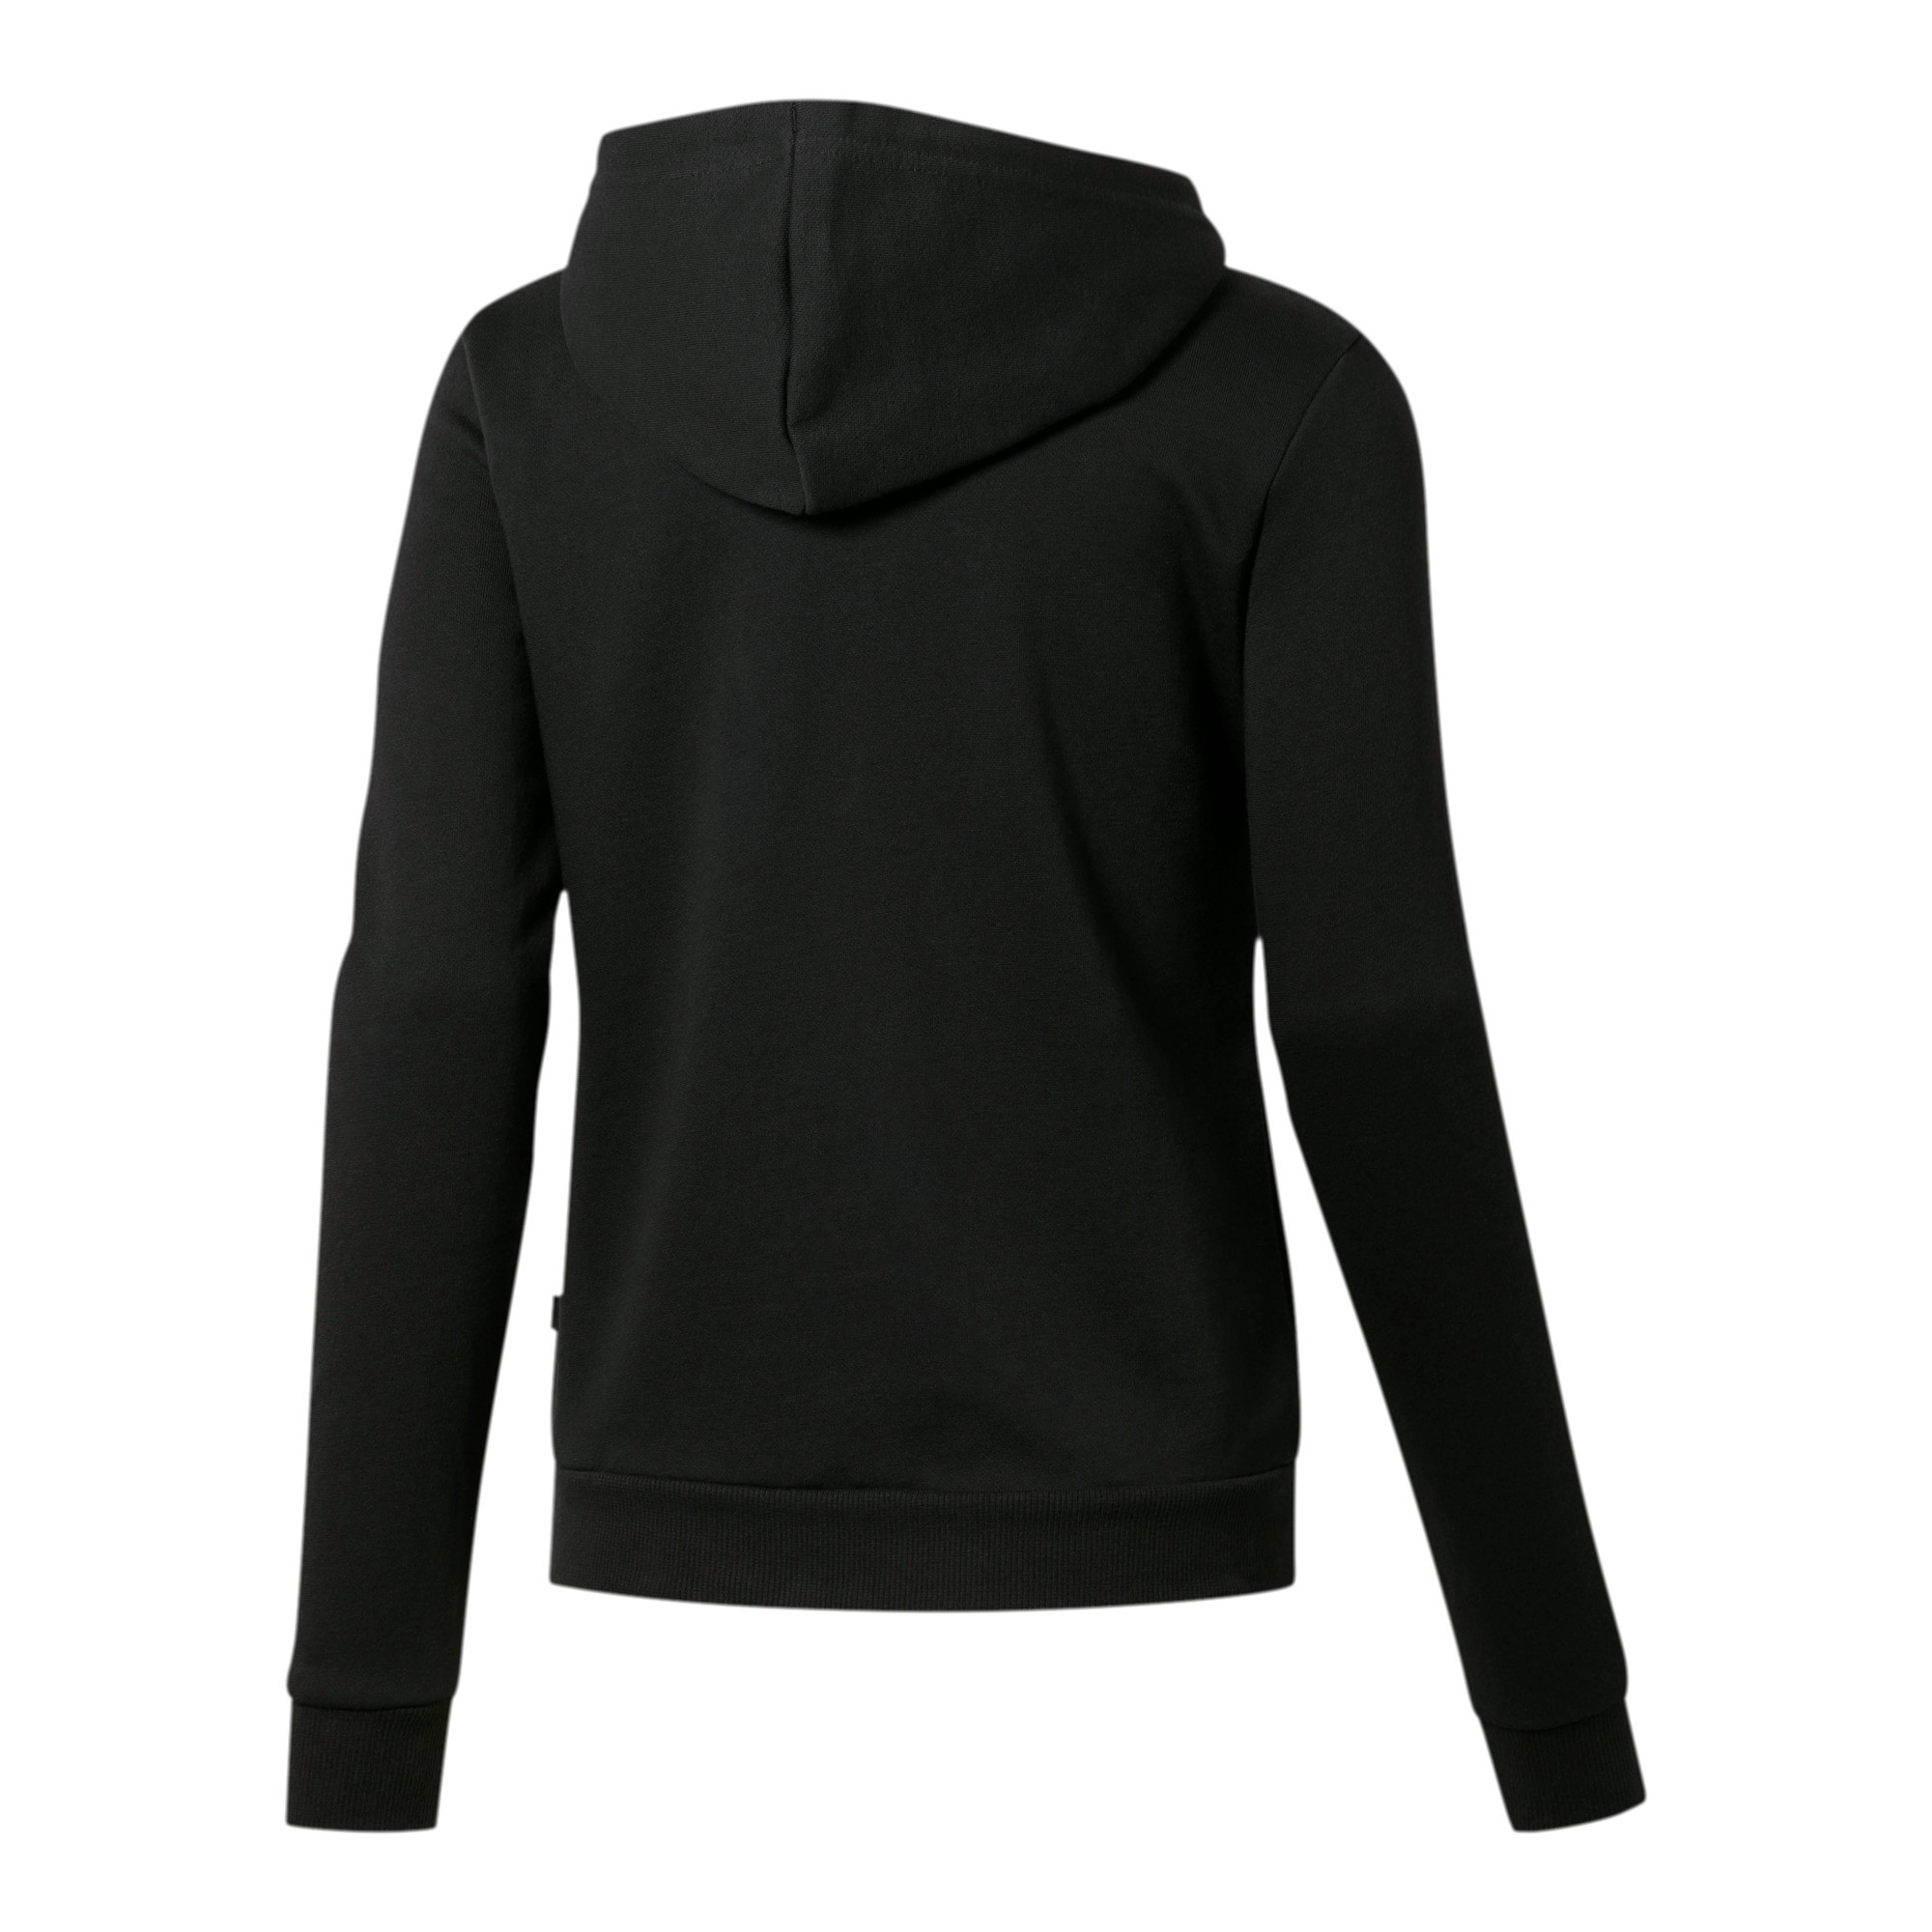 PUMA-Women-039-s-Essential-Fleece-Hooded-Jacket-Women-Sweat-Basics thumbnail 3